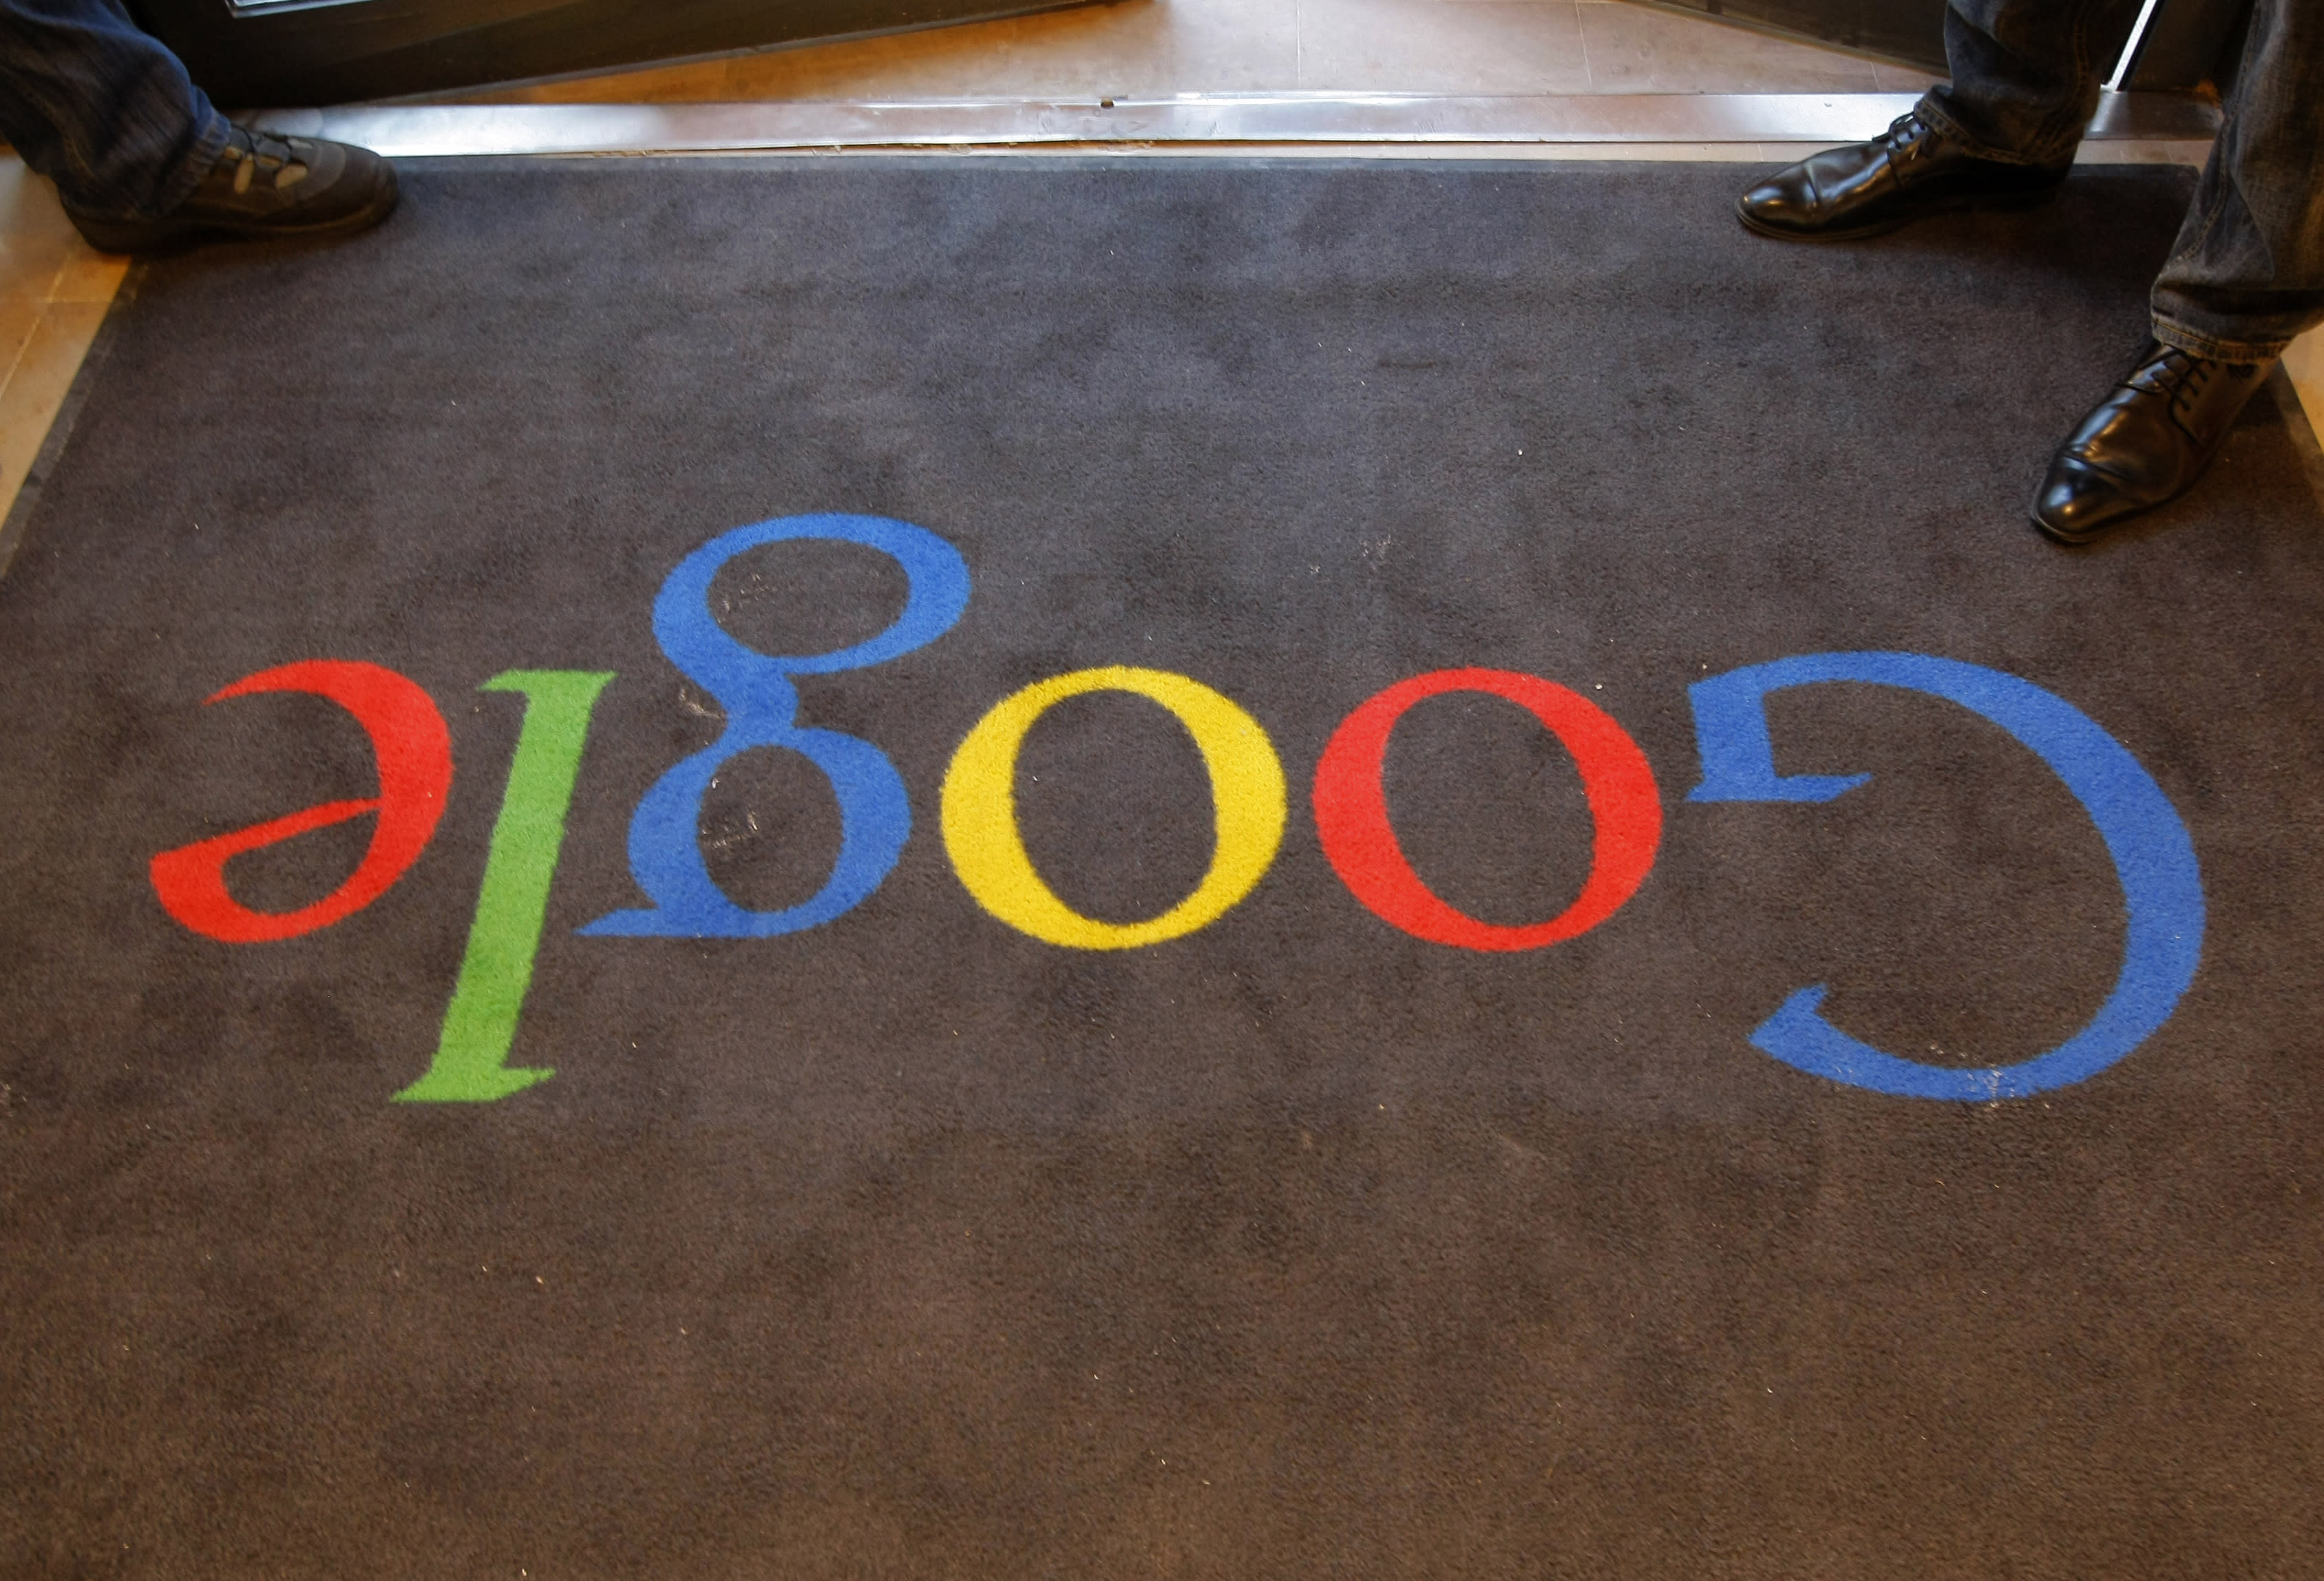 FILE - In this Tuesday, Dec. 6, 2011 file photo, a carpet at the entrance of Google France's new offices before its inauguration by French President Nicolas Sarkozy, in Paris. Google's new privacy policy is under attack from regulators in its largest European markets, who on Tuesday, April 2, 2013 brought legal action to try and force the company to overhaul practices they say let it create a data goldmine at the expense of unwitting users. (AP Photo/Jacques Brinon, Pool-File)